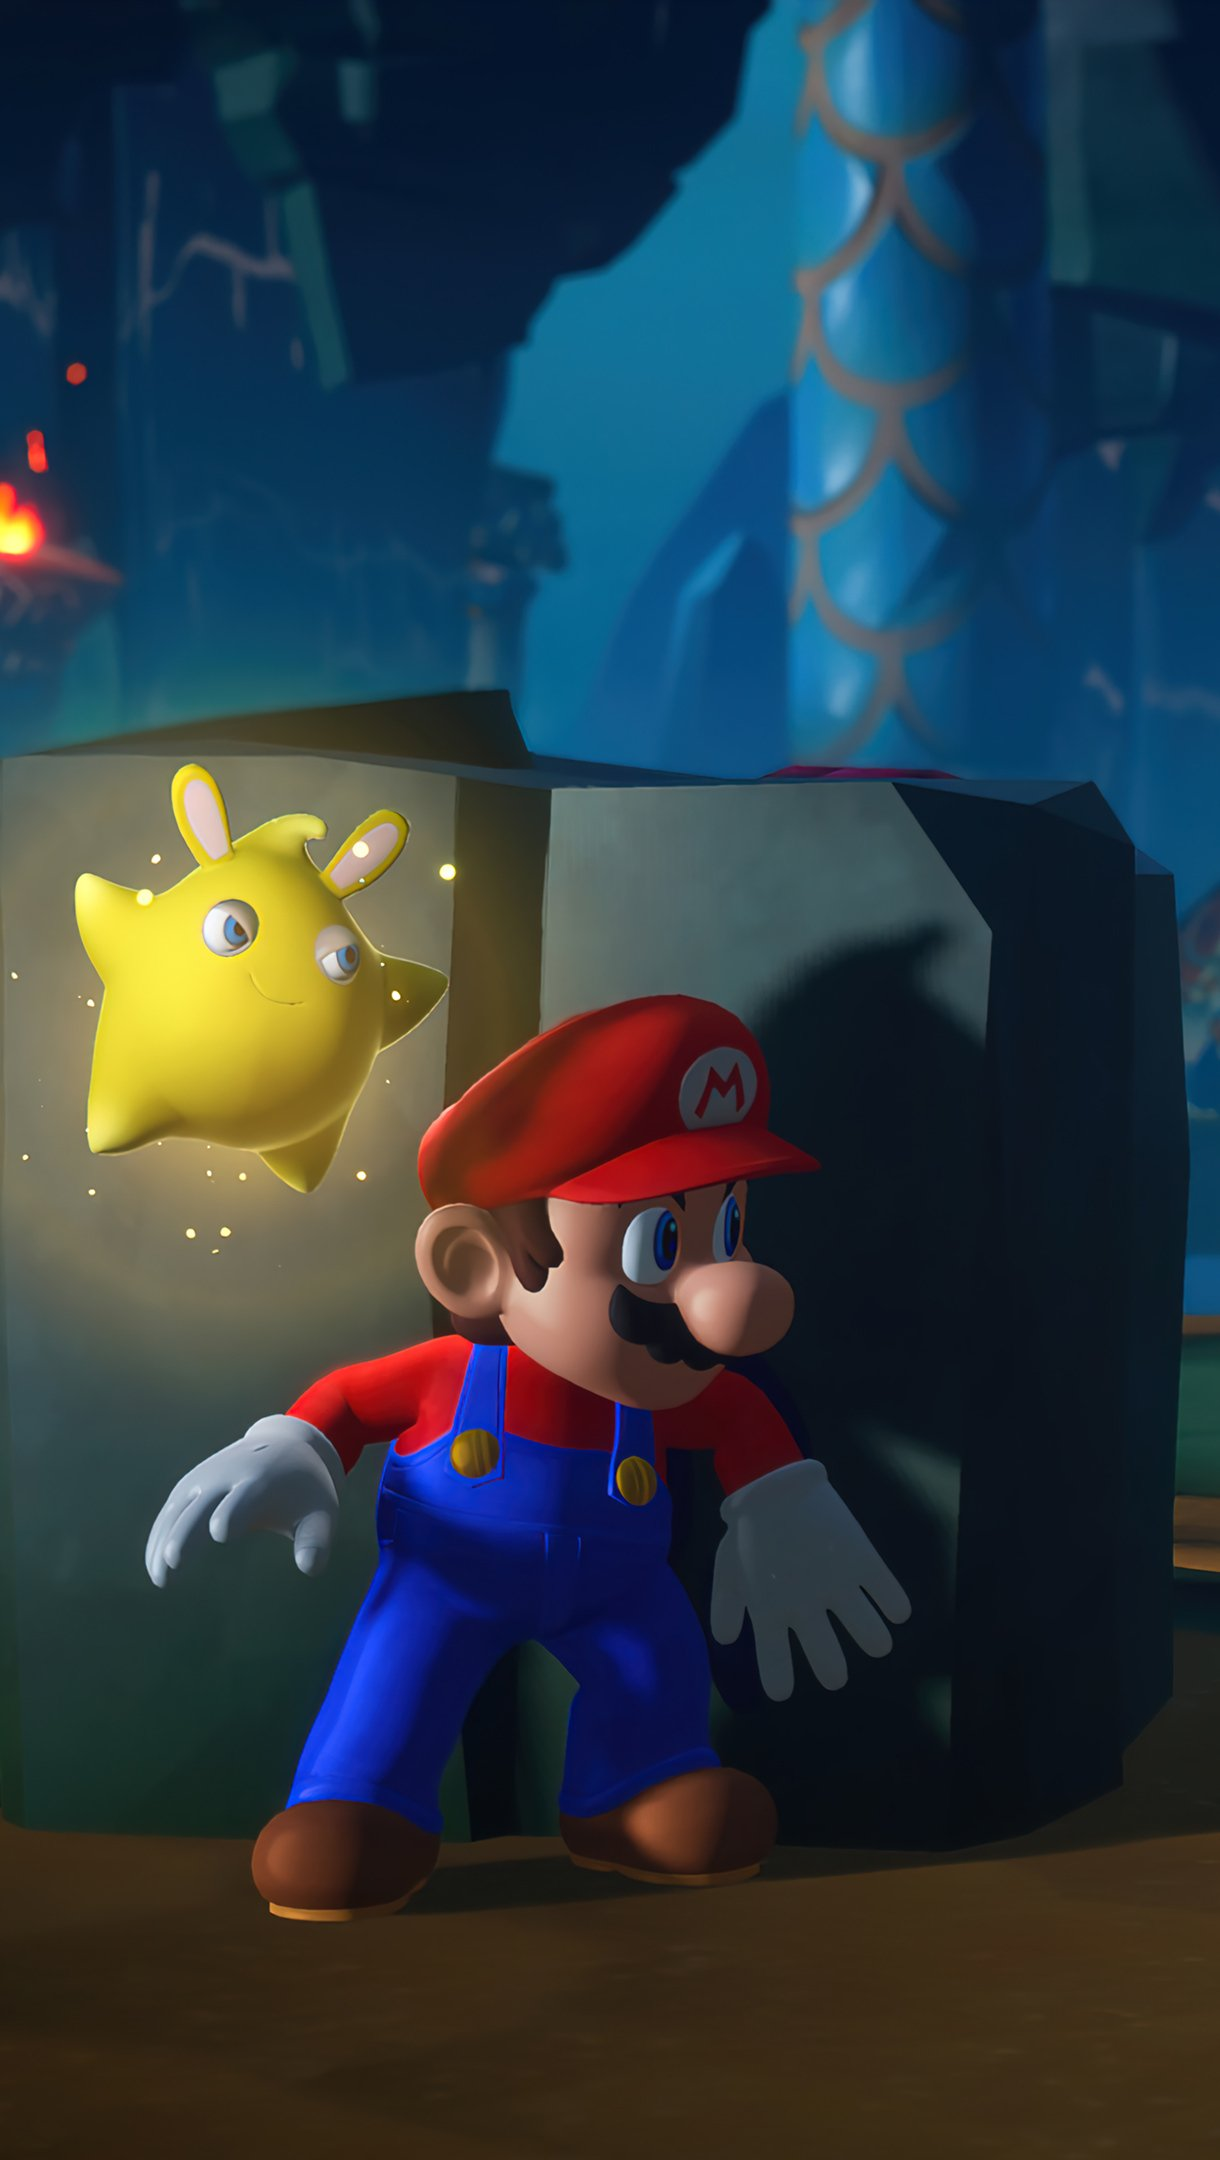 Wallpaper Mario Rabbids Sparks of Hope Game Vertical